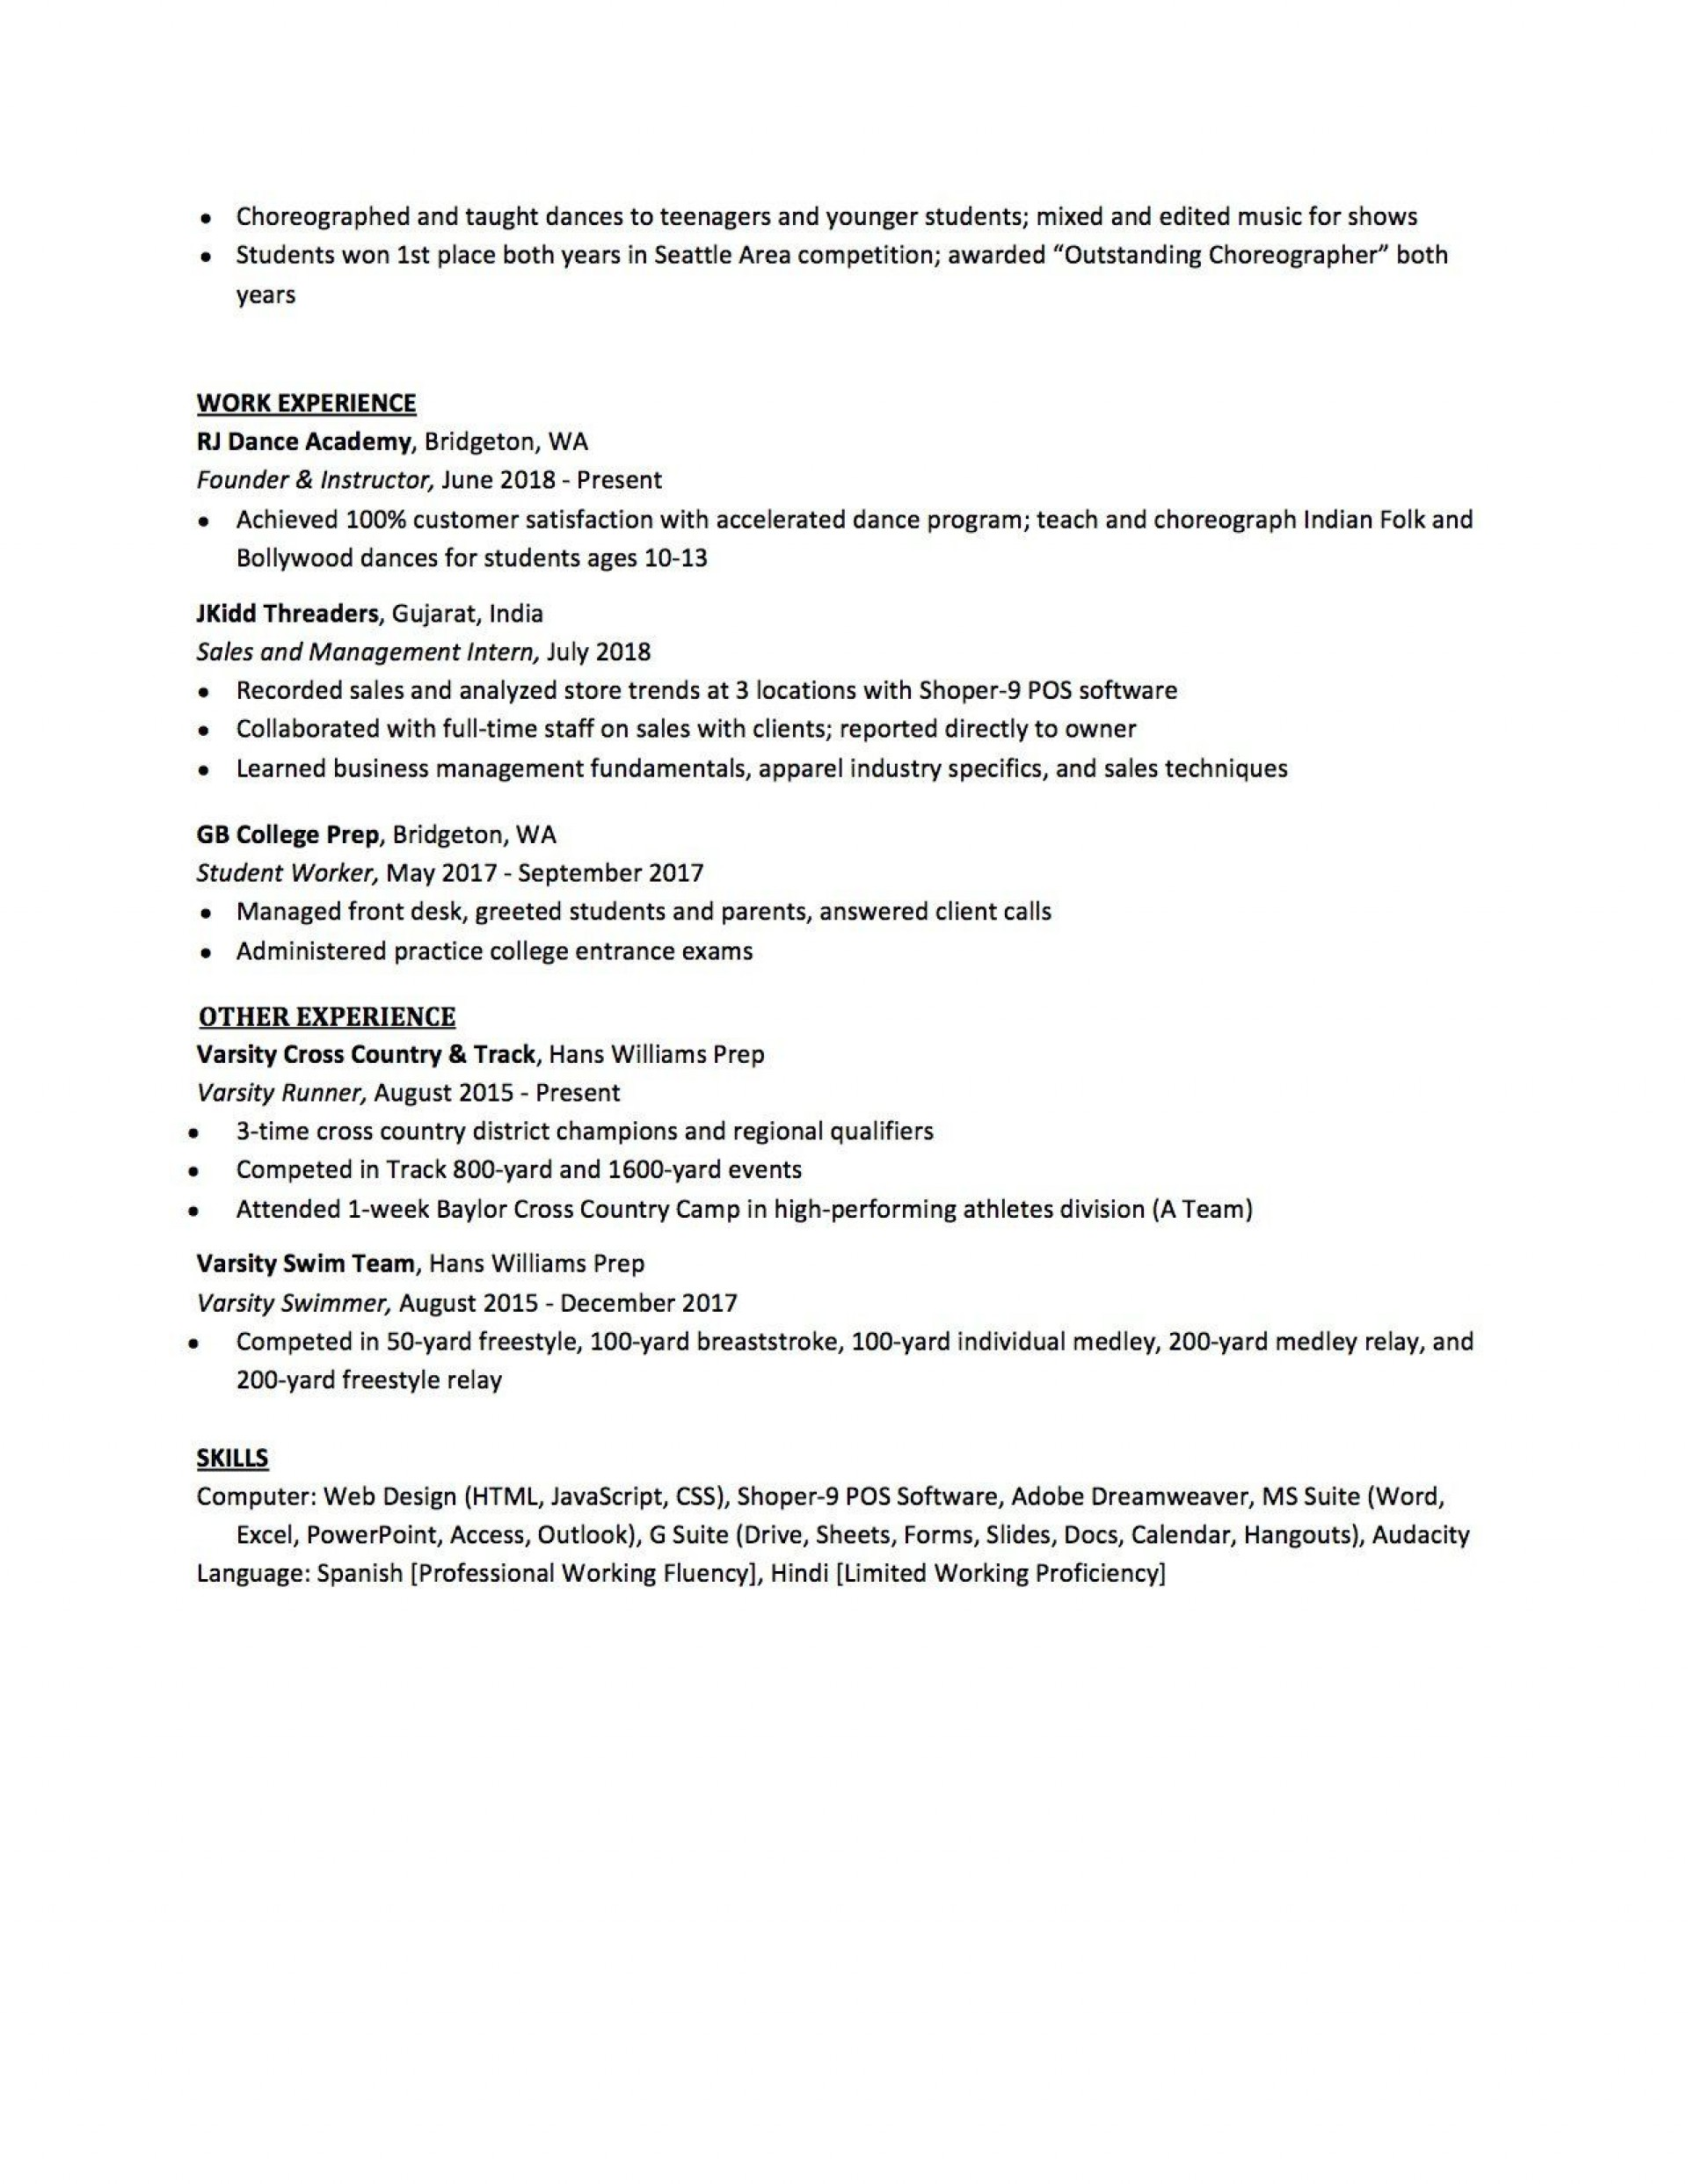 resume template high school addictionary graduate for college simple photo medical doctor Resume High School Graduate Resume For College